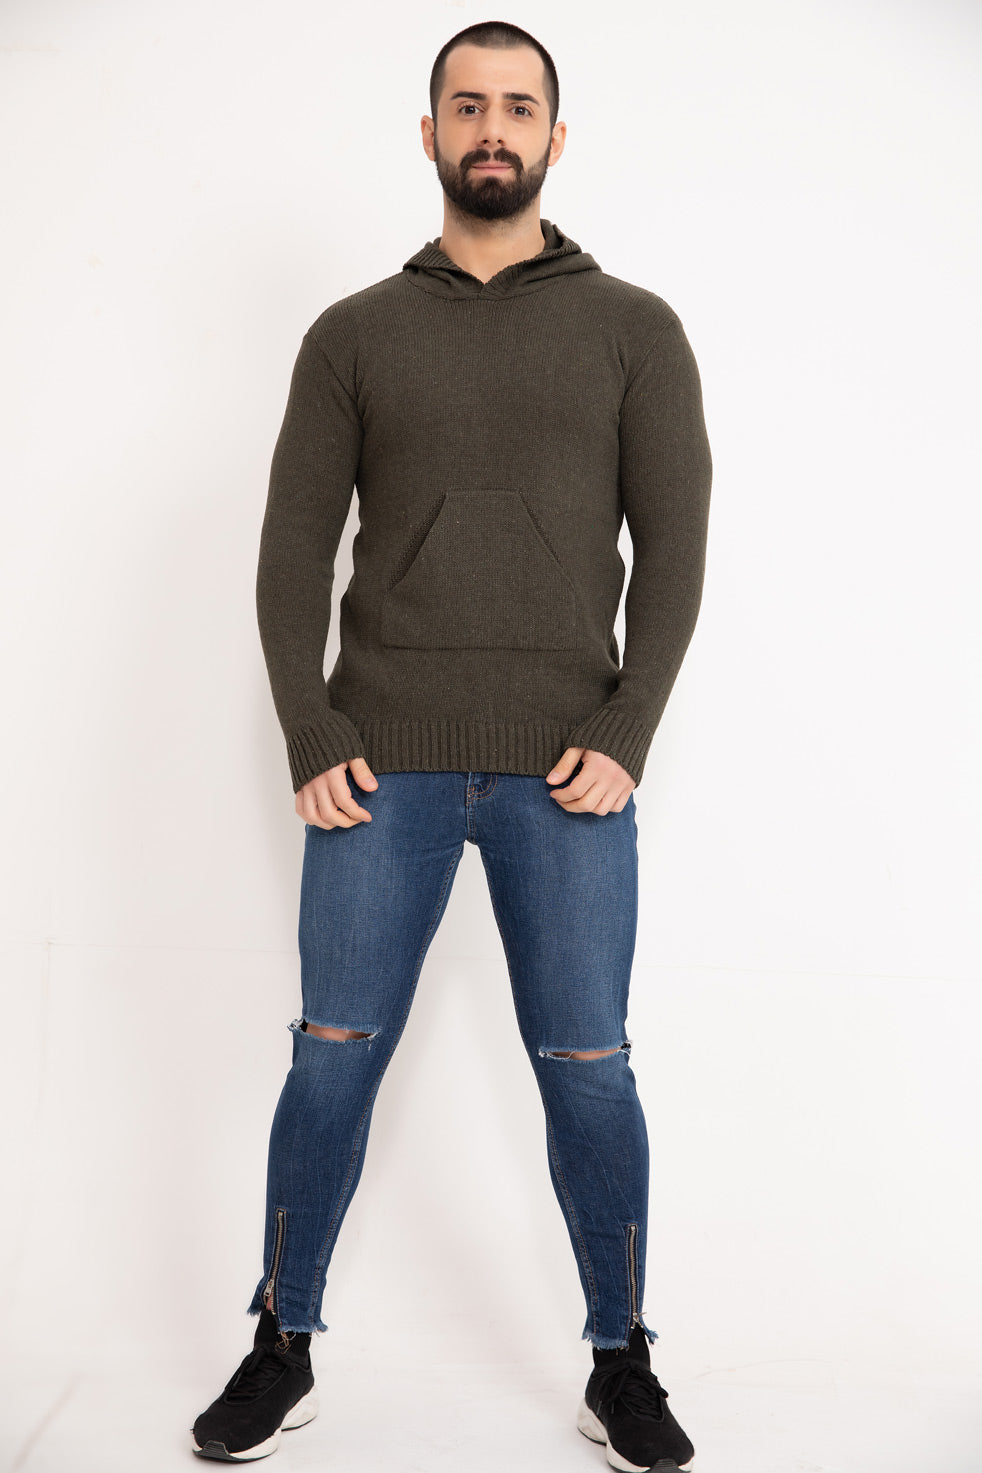 Olive Hooded Men's Knitwear Sweater